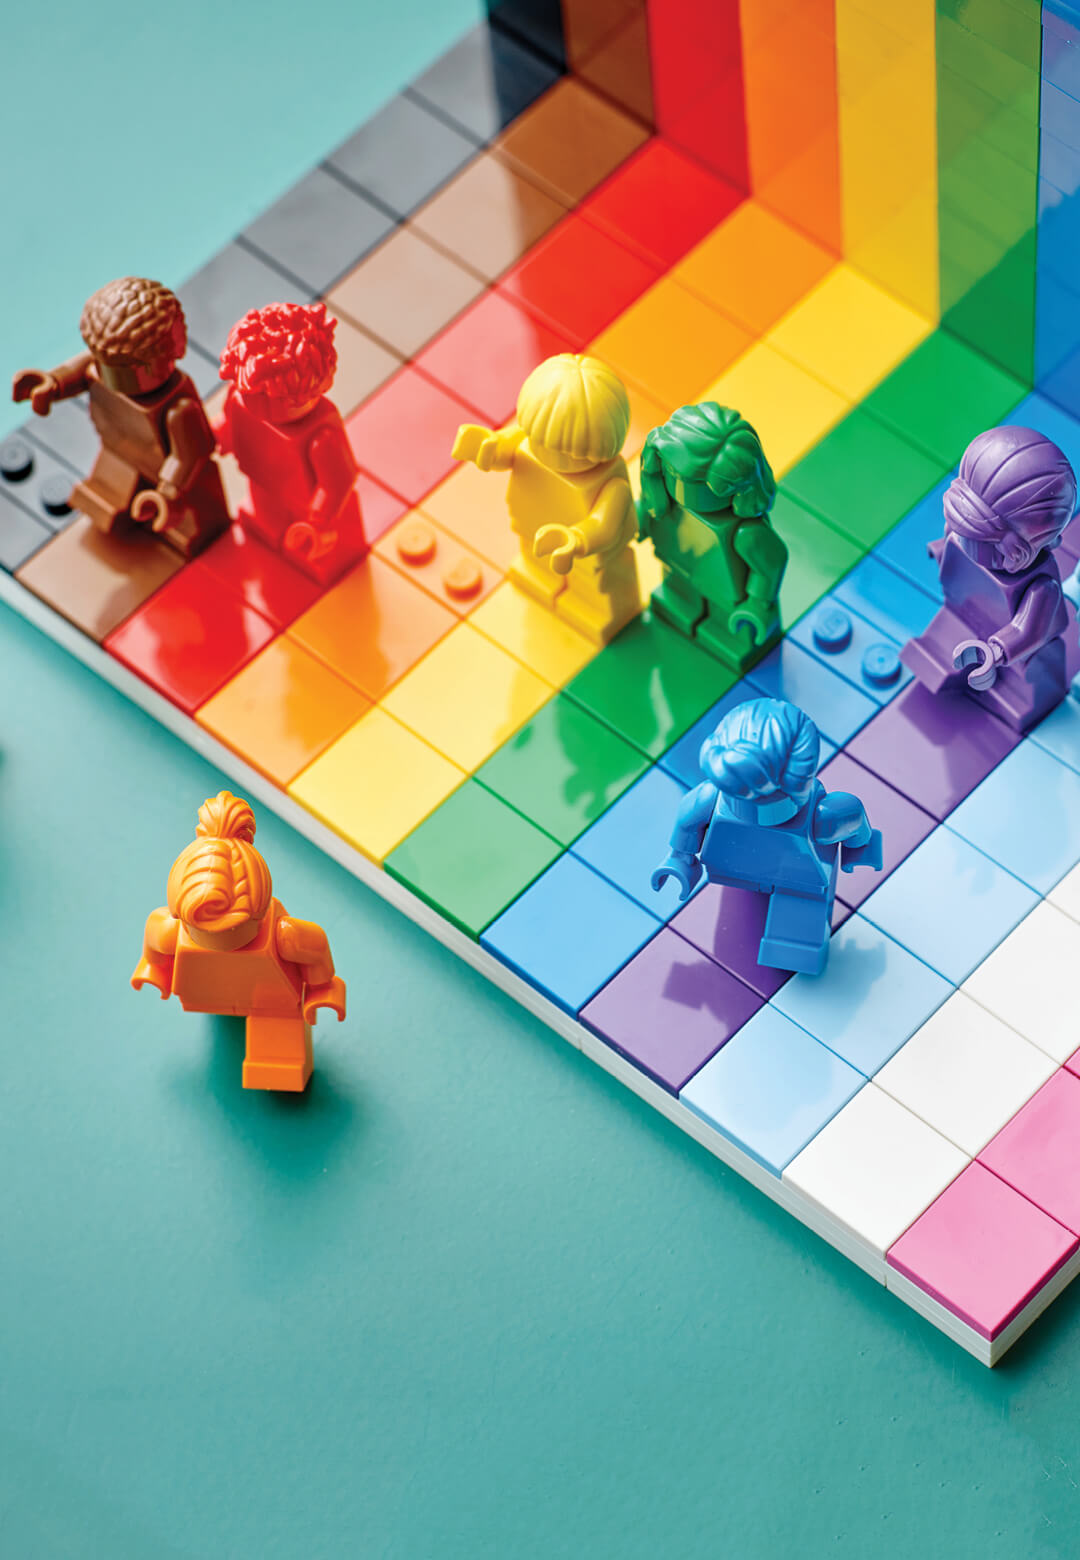 LEGO has unveiled a new multicoloured display set celebrating the LGBTQIA+ community, to promote inclusivity among its fans worldwide   LEGO 'Everyone is Awesome' set   STIRworld